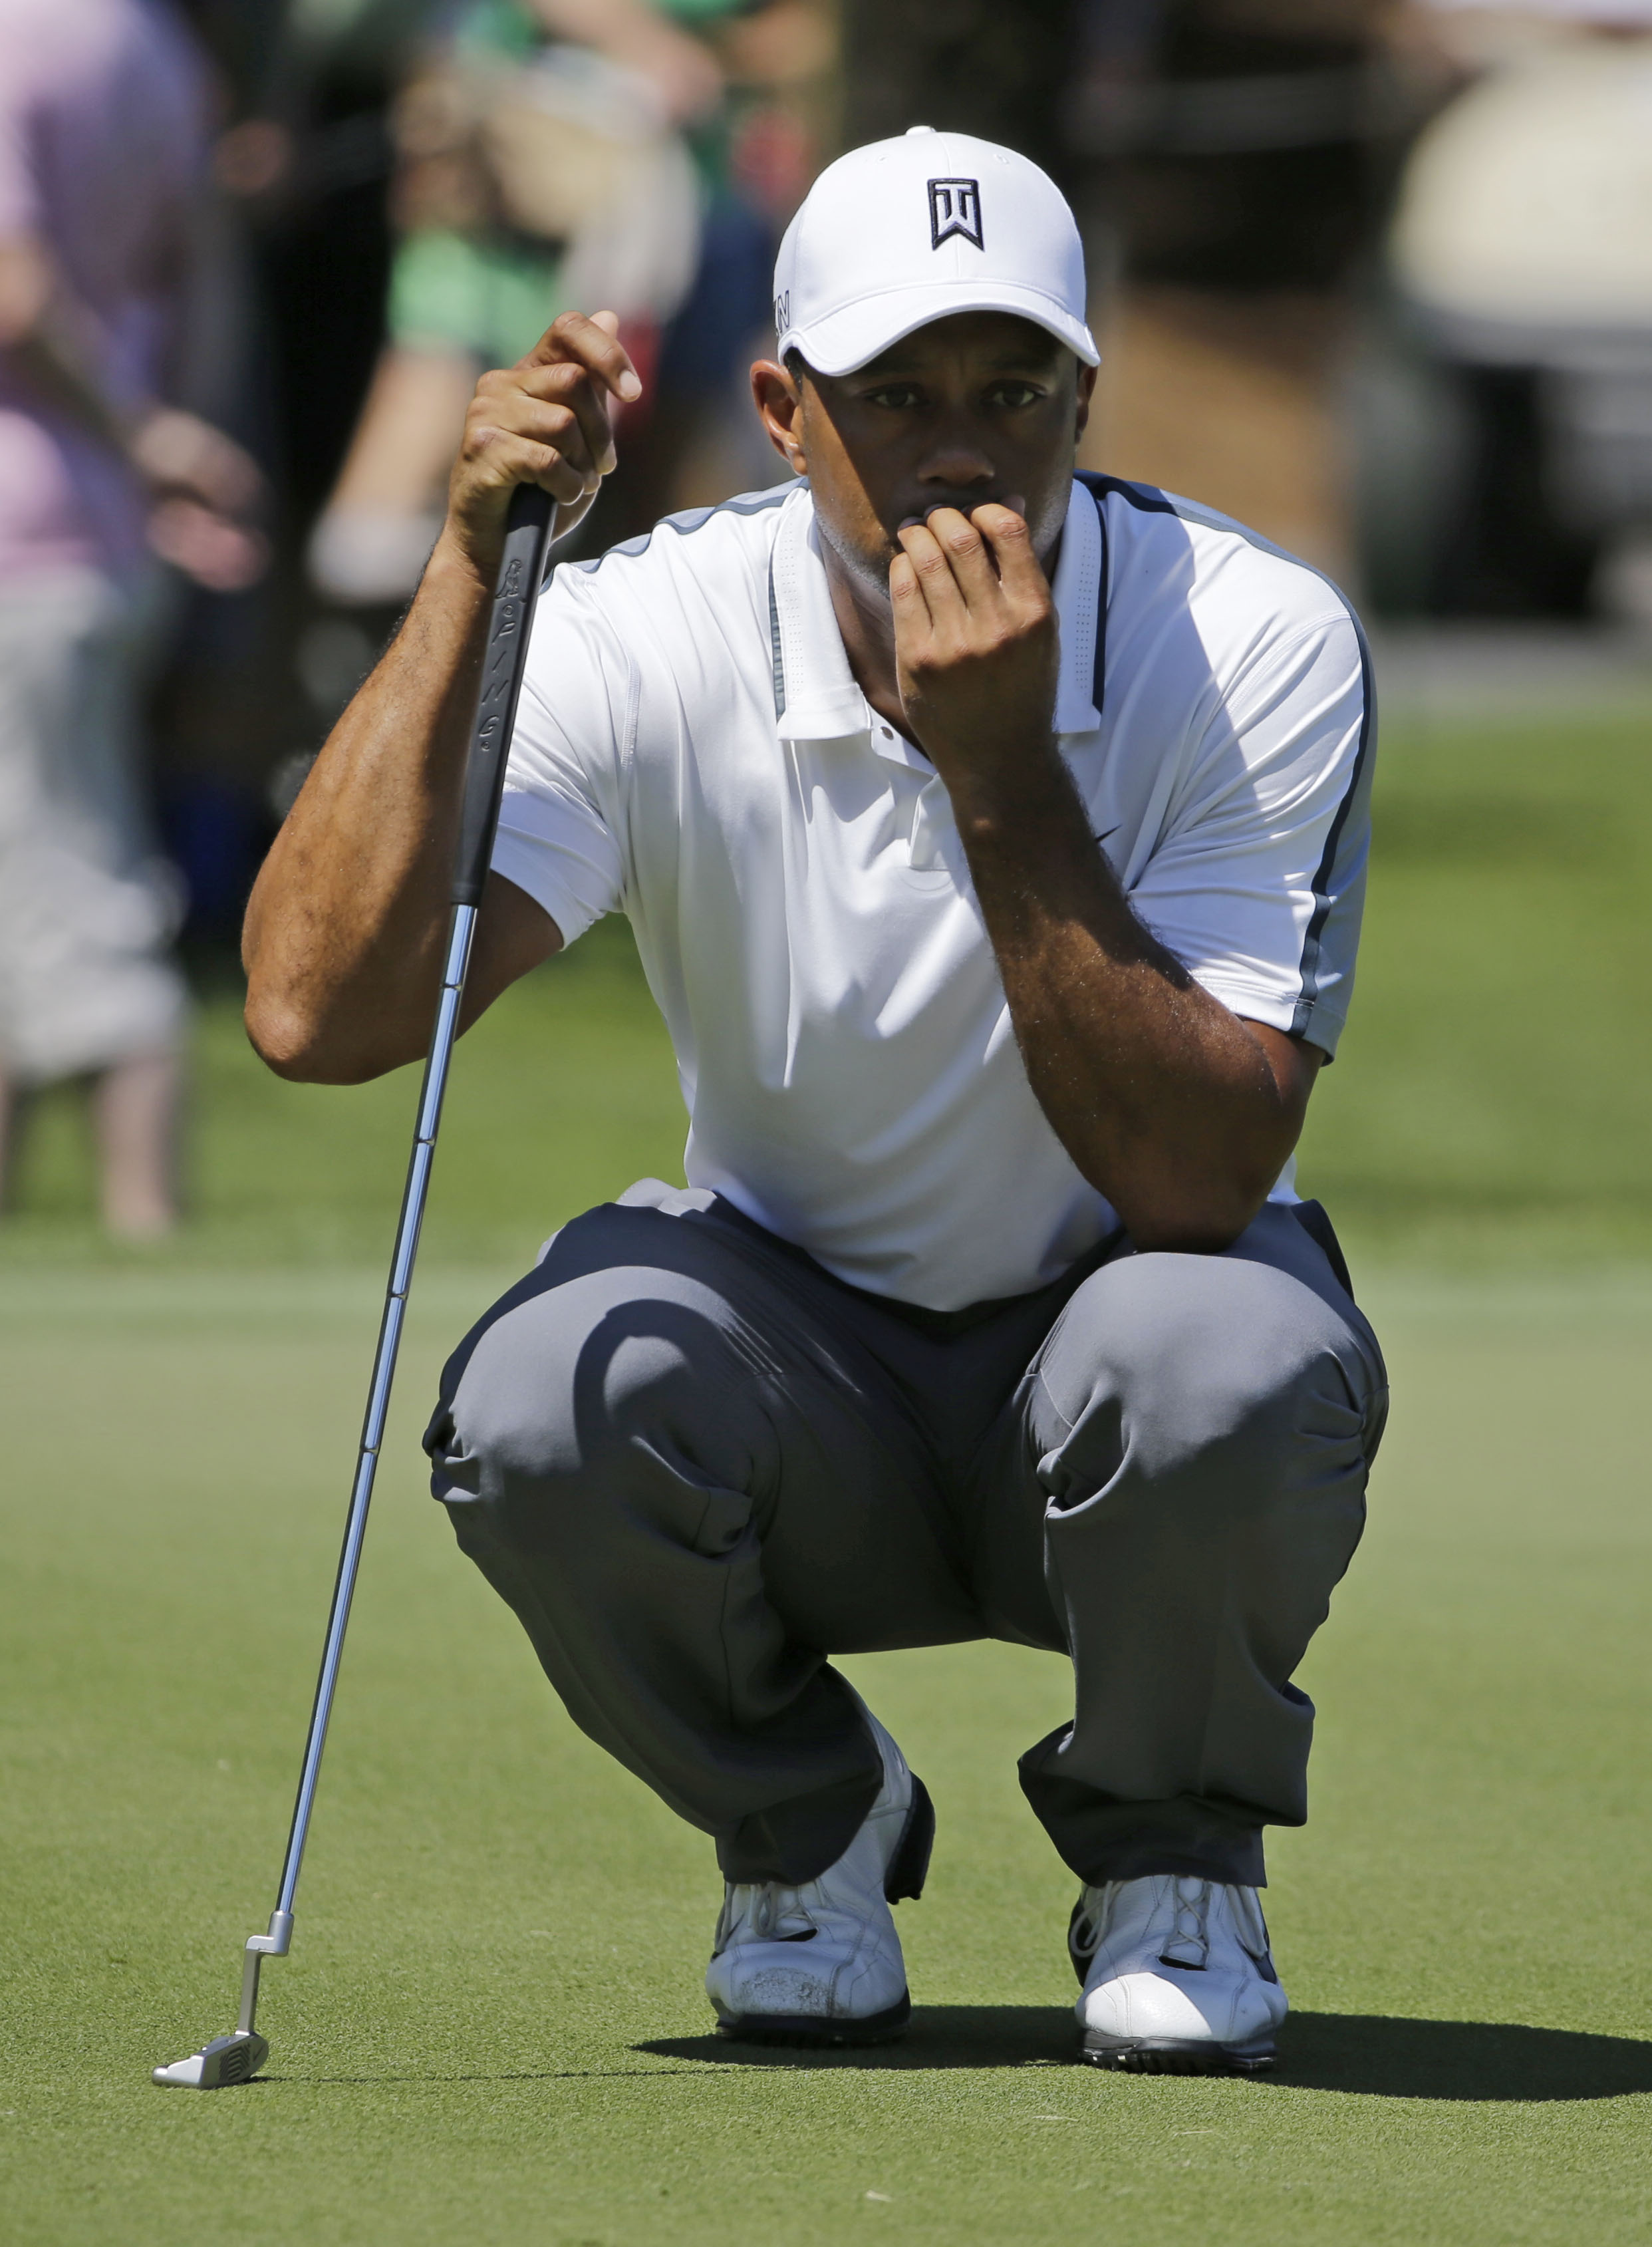 Tiger Woods looks at his shot on the sixth green during the first round of The Players Championship golf tournament Thursday, May 7, 2015, in Ponte Vedra Beach, Fla., Fla. (AP Photo/Chris O'Meara)